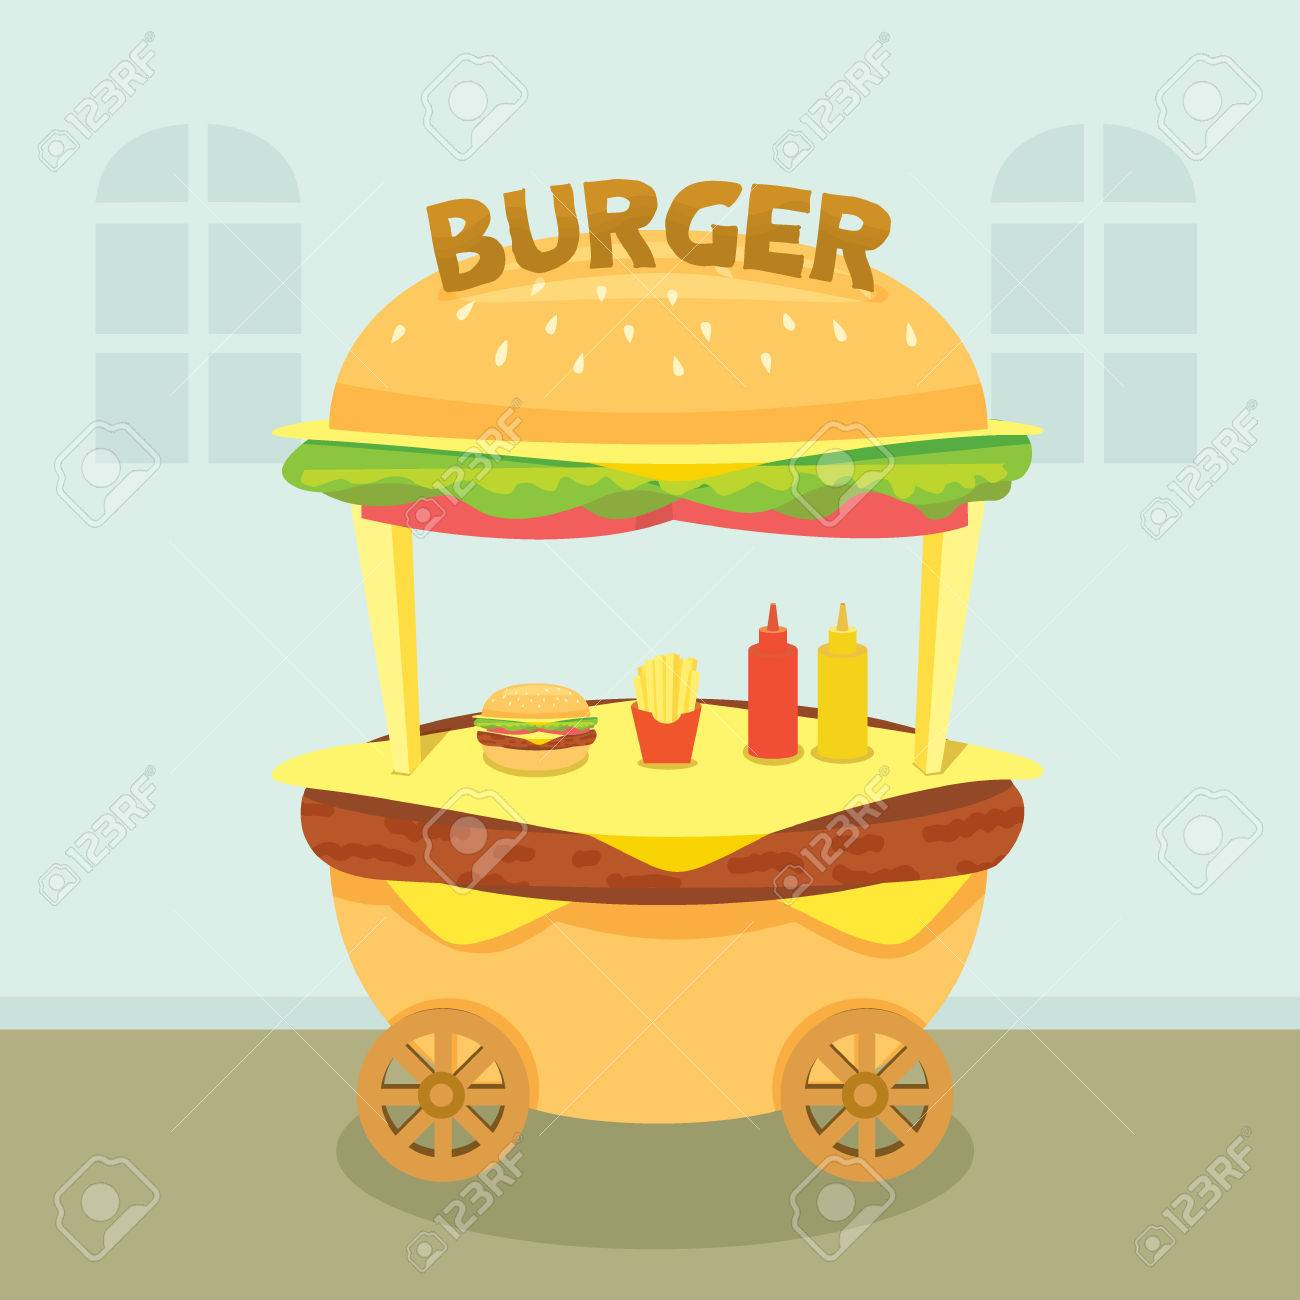 Illustration vector of hamburger cart shop for sale decoration with burger  sign on street food Design for kiosk,booth,store,retail Pastel background